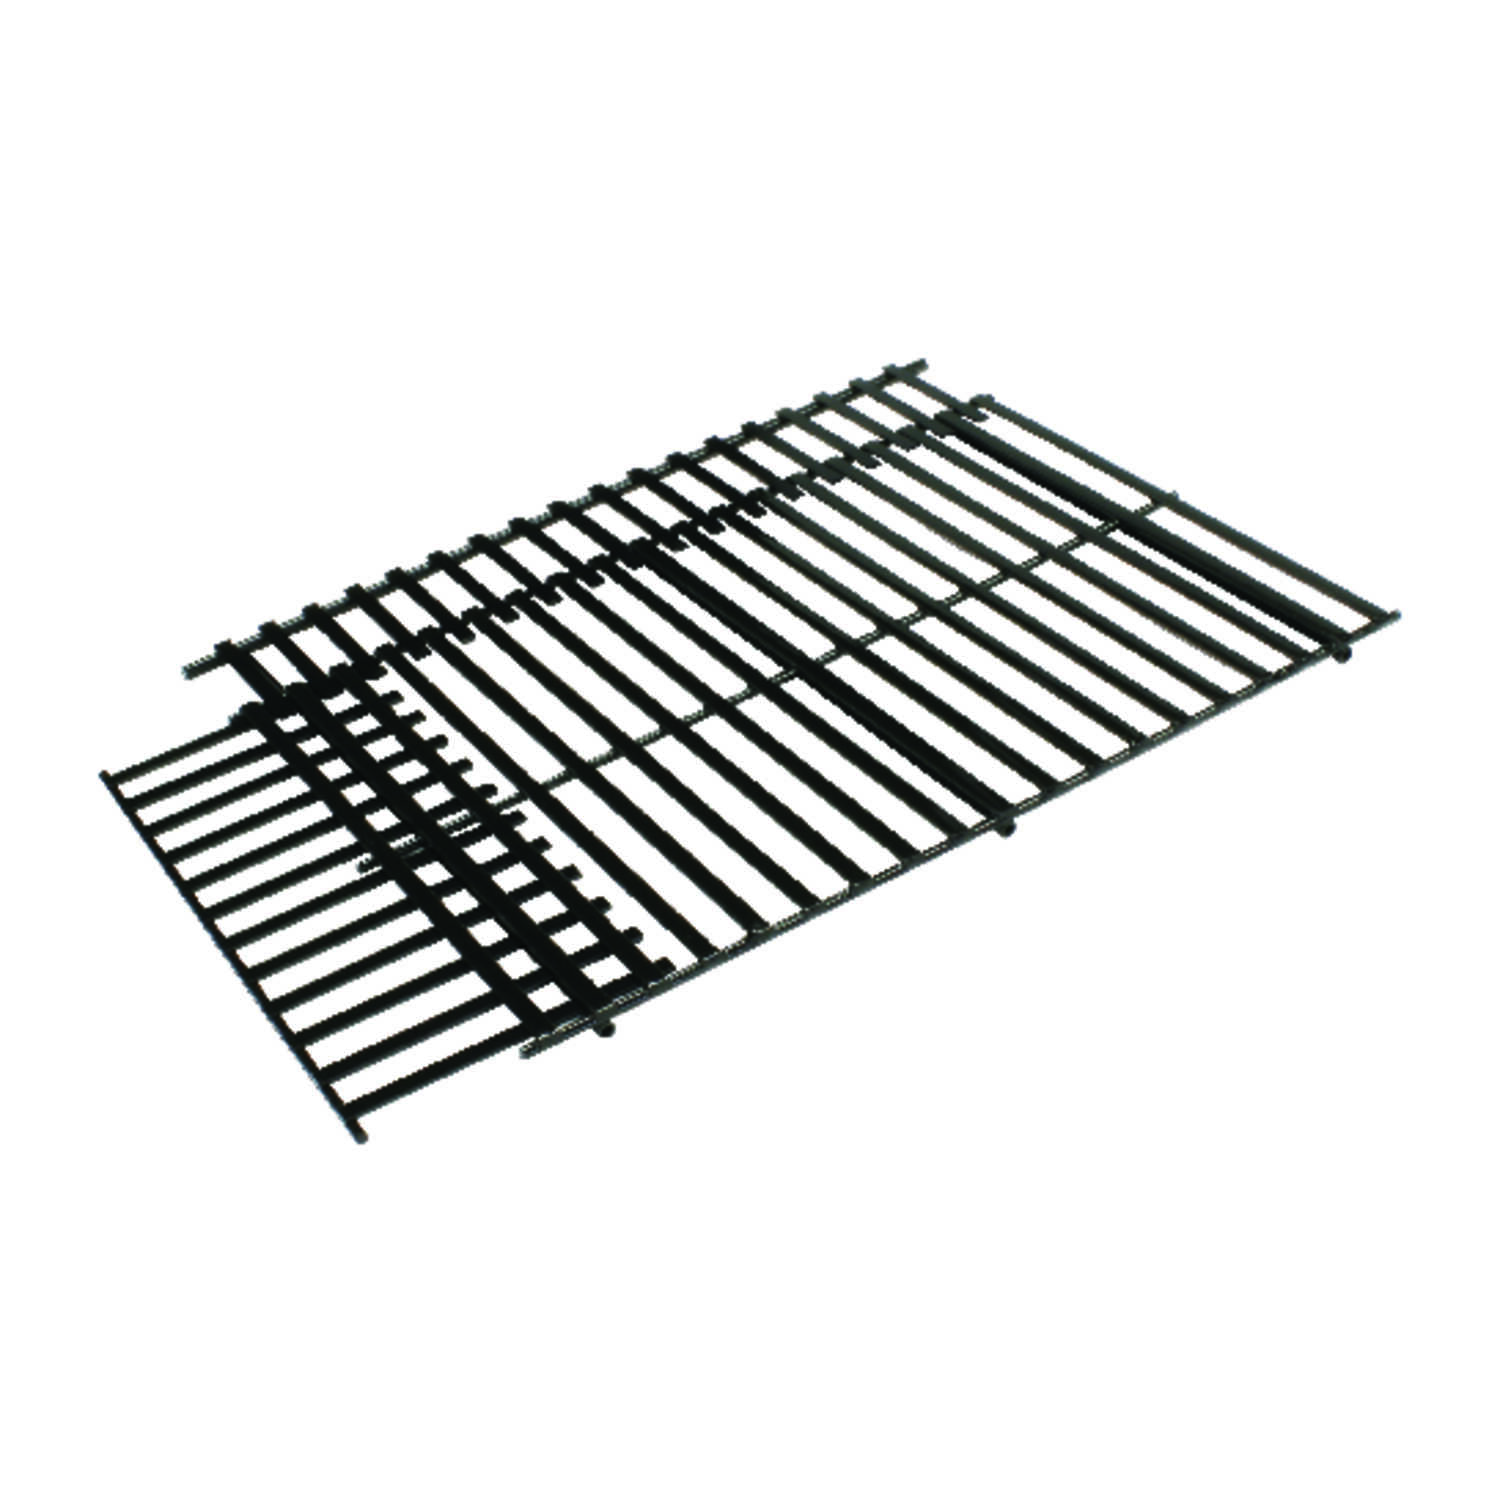 Grill Mark  Cast Iron/Porcelain  Grill Cooking Grate  21 in. H x 14.5 in. W x 21 in. L